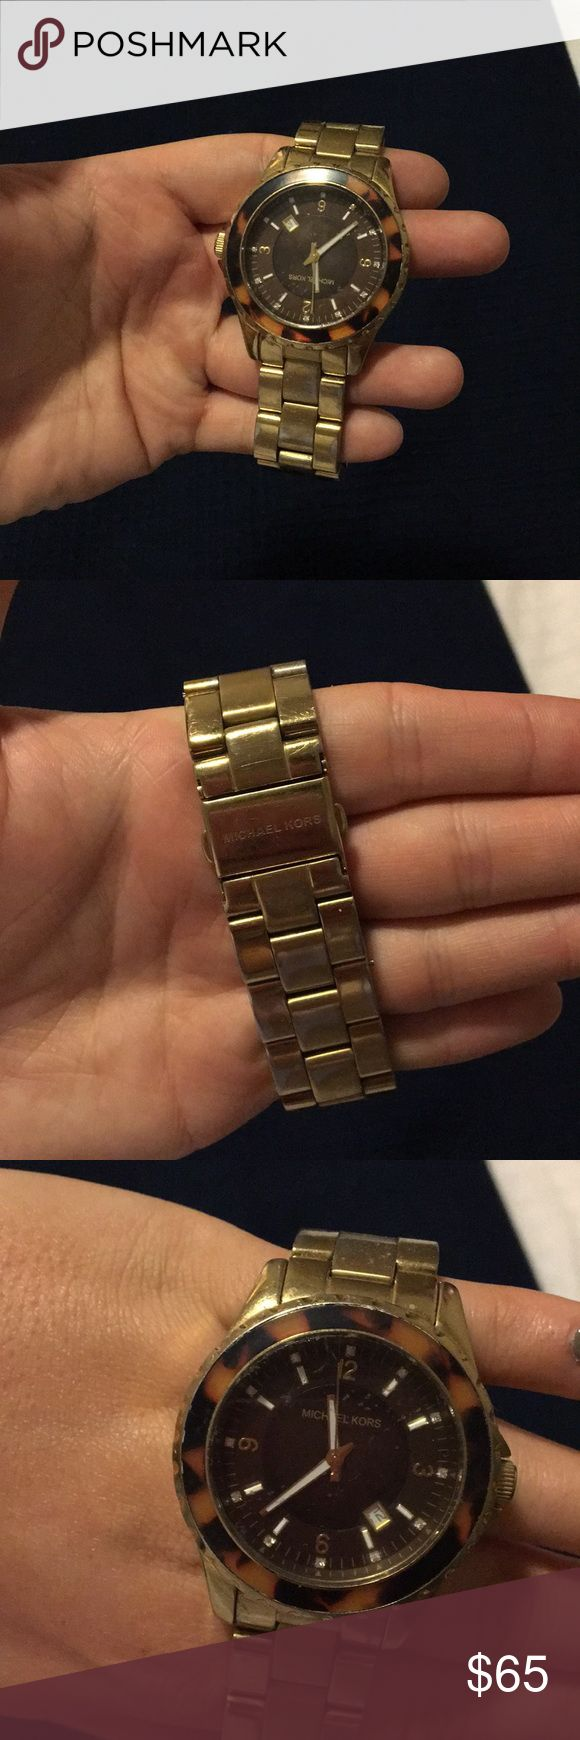 Michael Kors Gold/Tortoise Watch Some tarnishing (pictured) in good condition! Michael Kors Accessories Watches